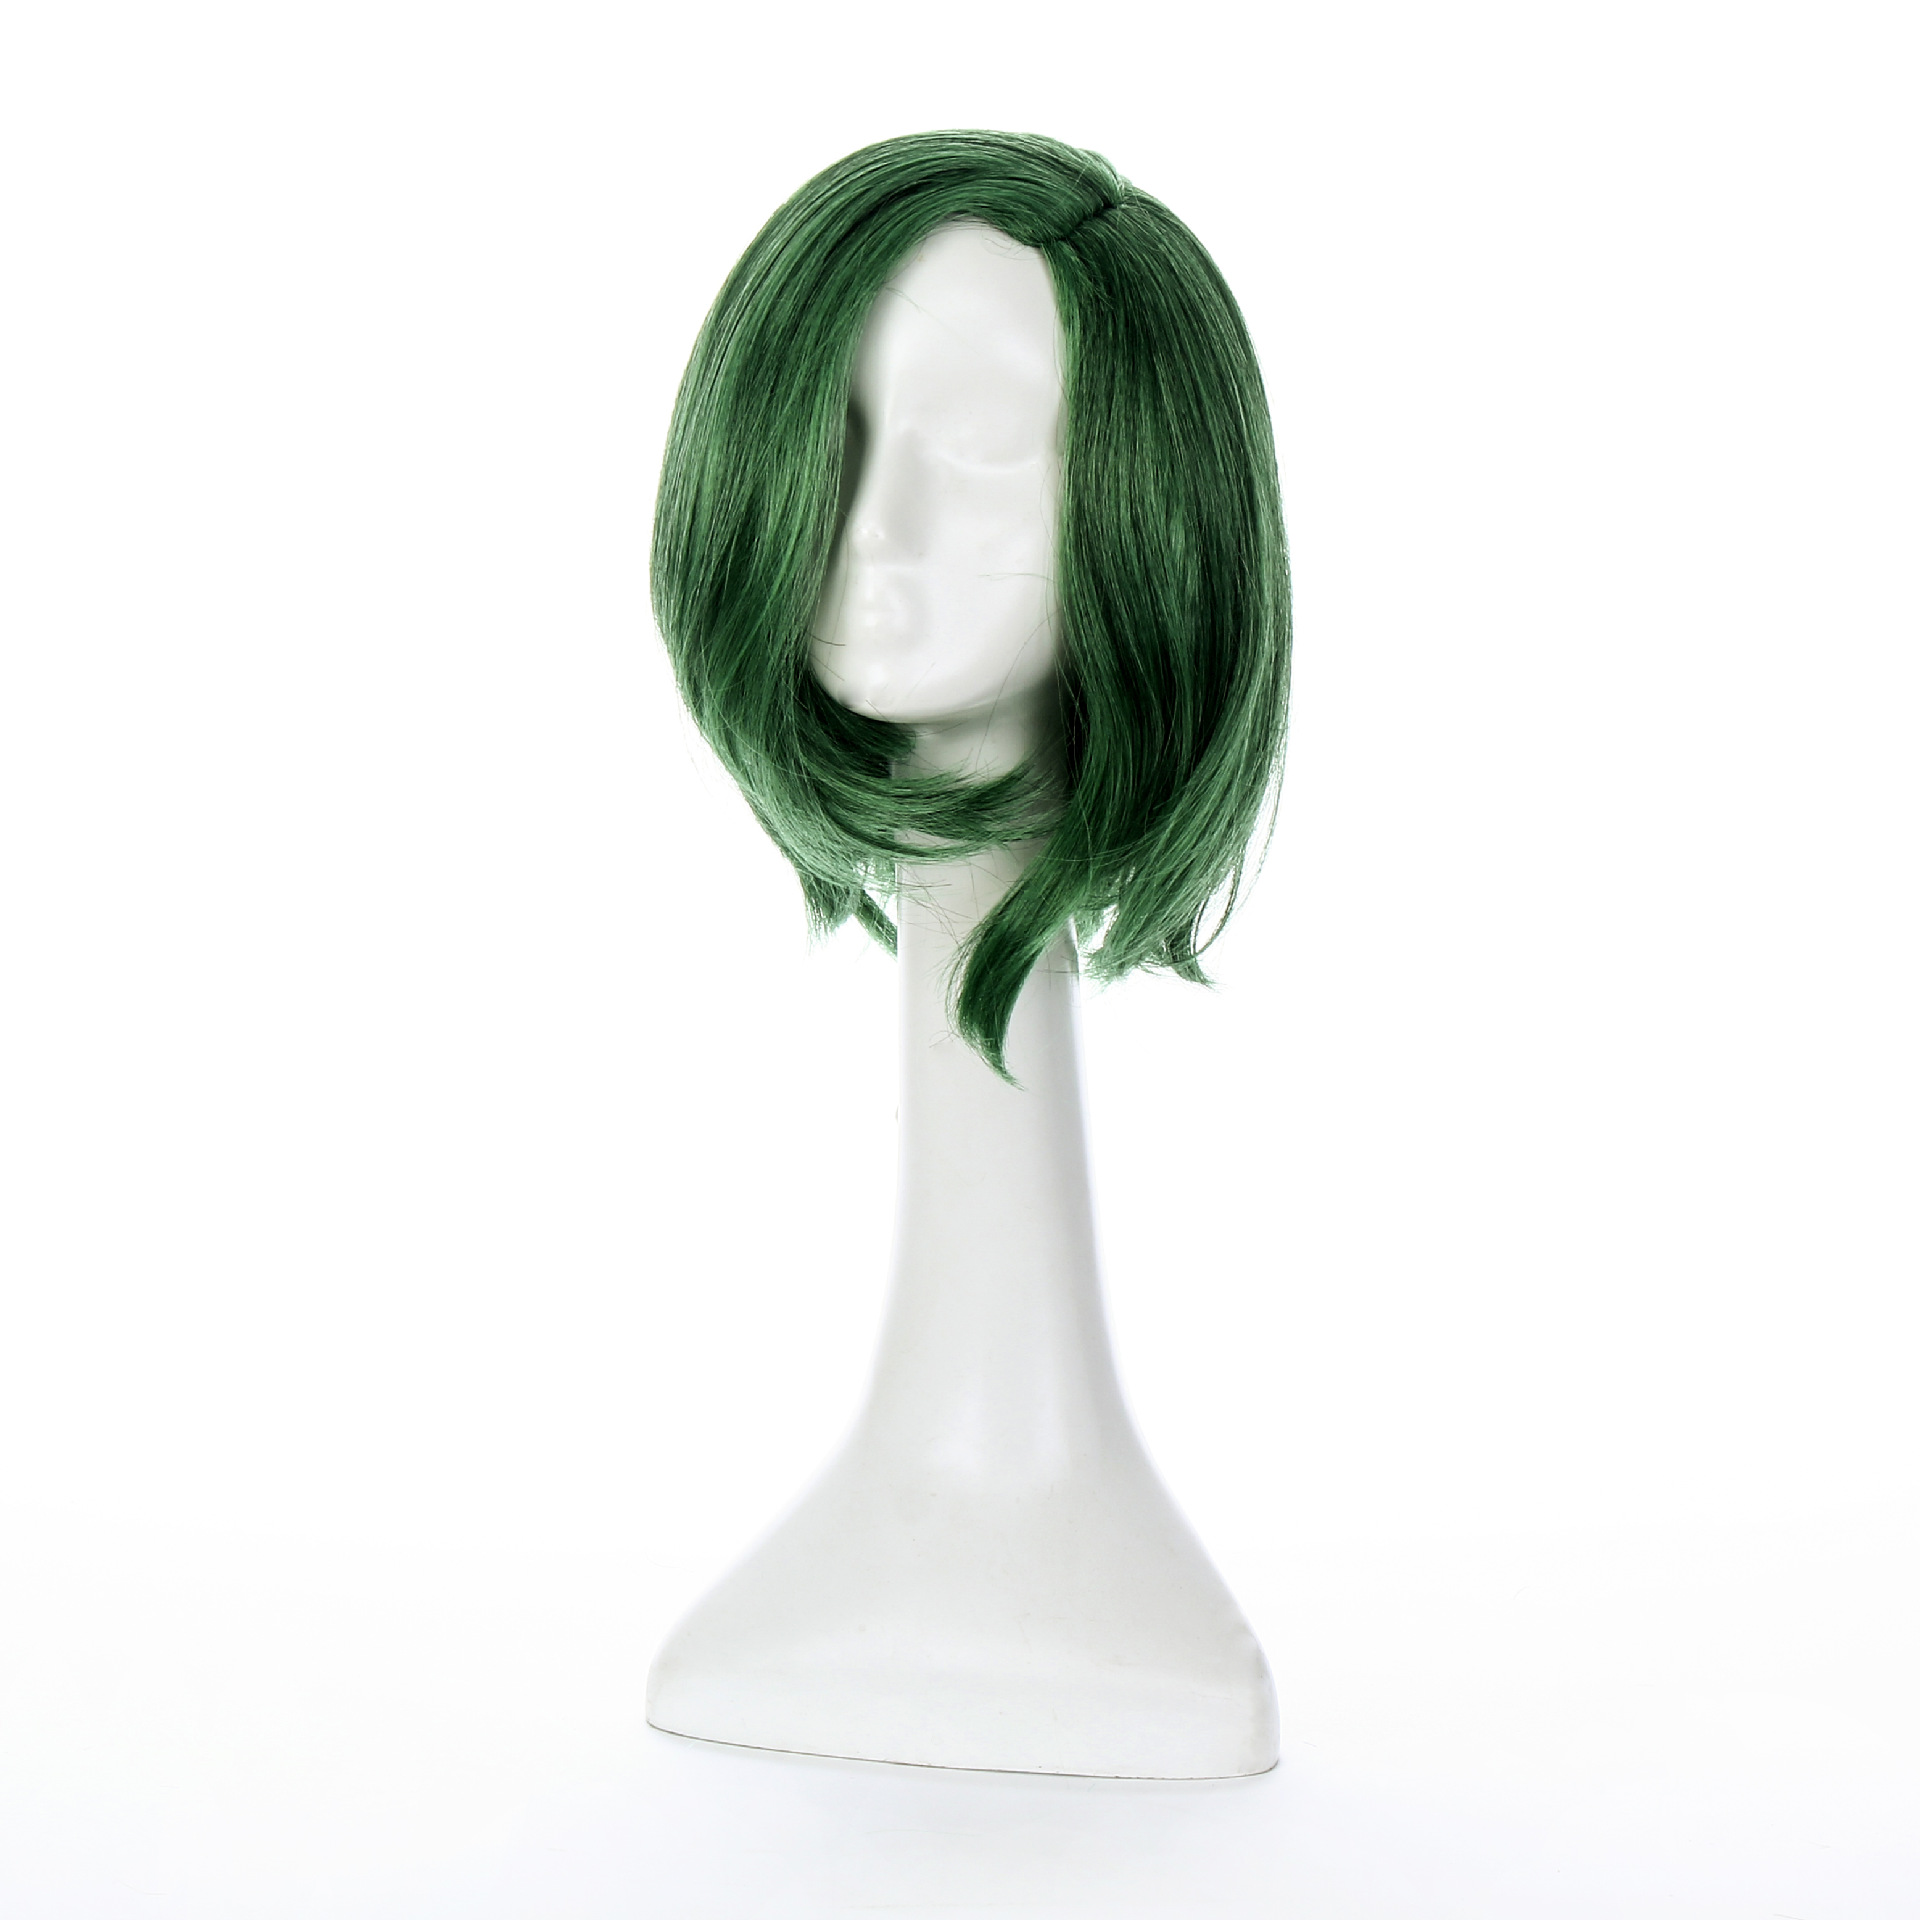 Beautytown Polaris Short Heat Resistant Hair Green Hand Tied Blogger Daily Makeup Synthetic Lace Front Wedding Cosplay Party Wig Be Shrewd In Money Matters